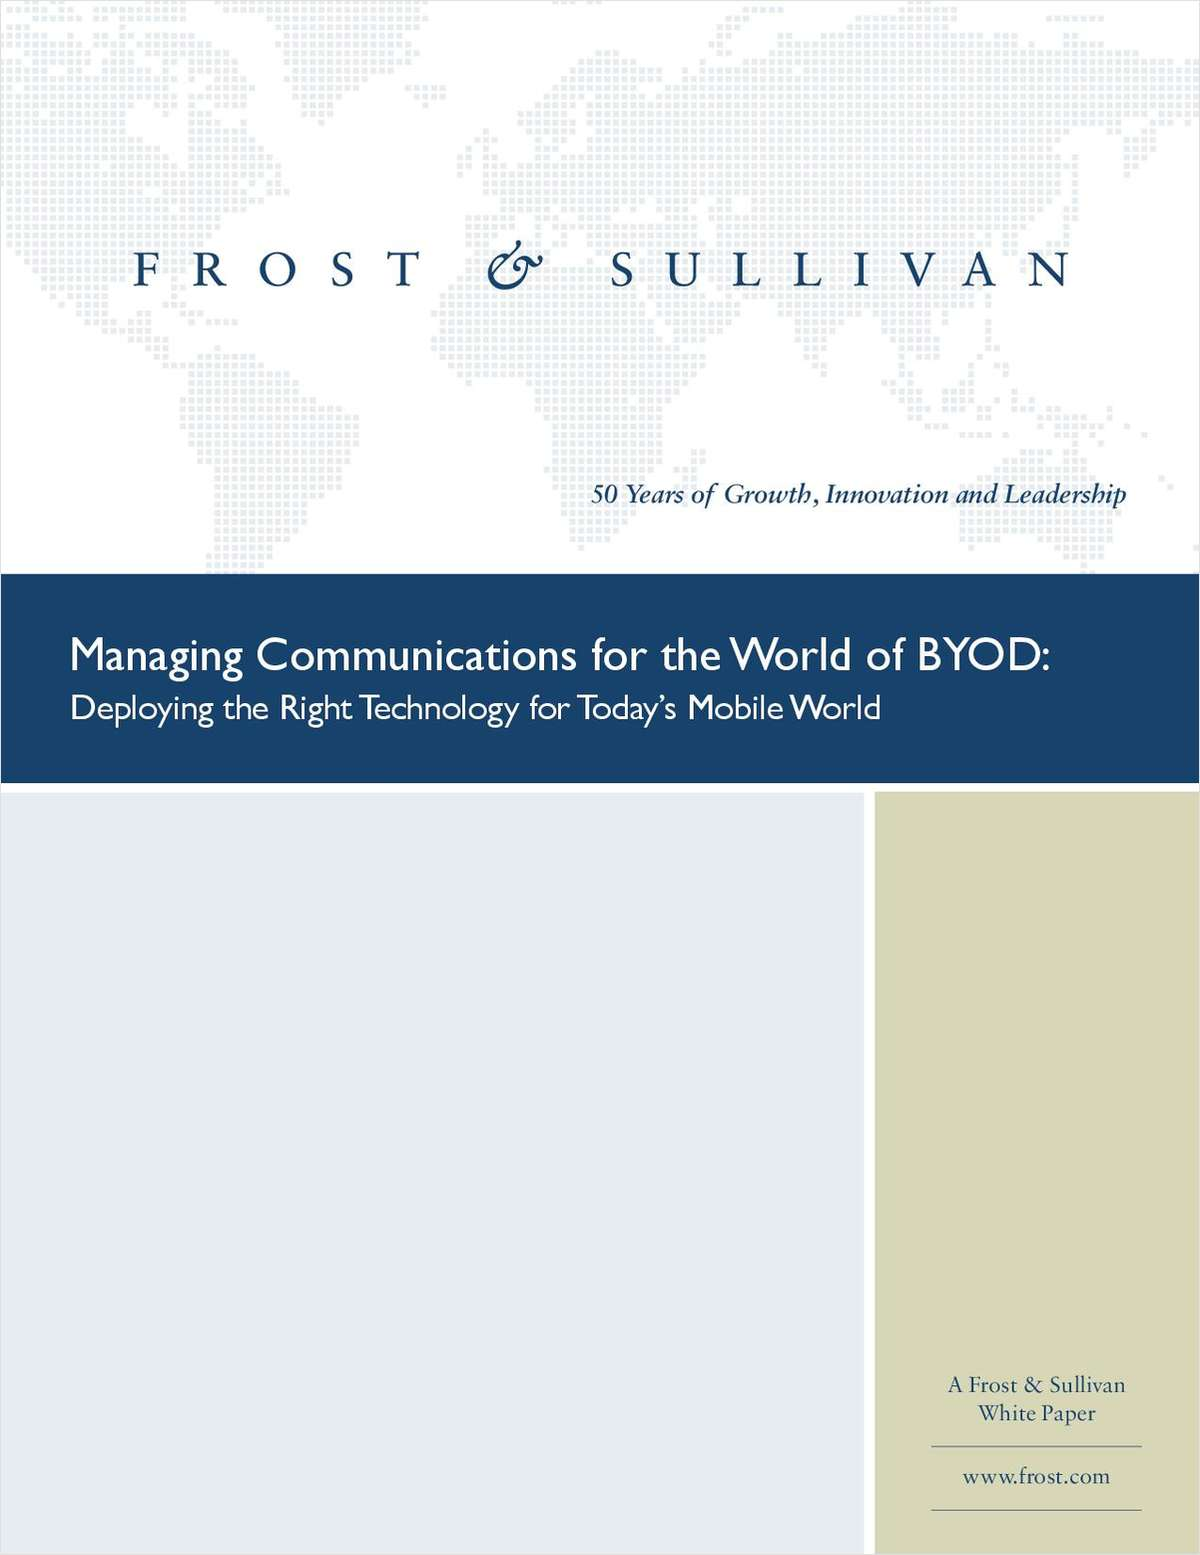 Managing Communications for the World of BYOD: Deploying the Right Technology for Today's Mobile World